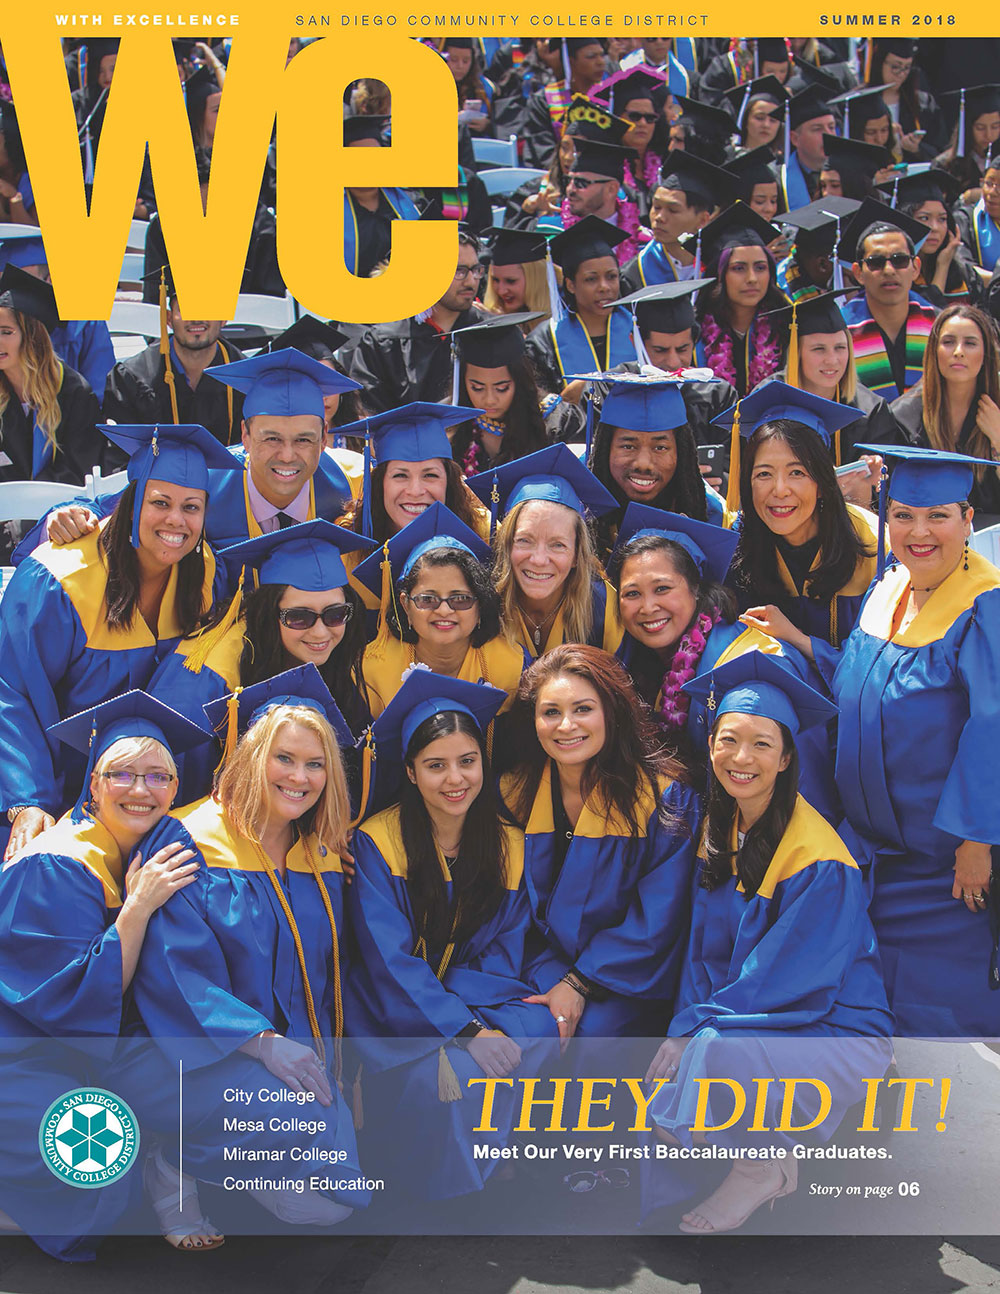 Cover Image of Latest WE Magazine goes here.